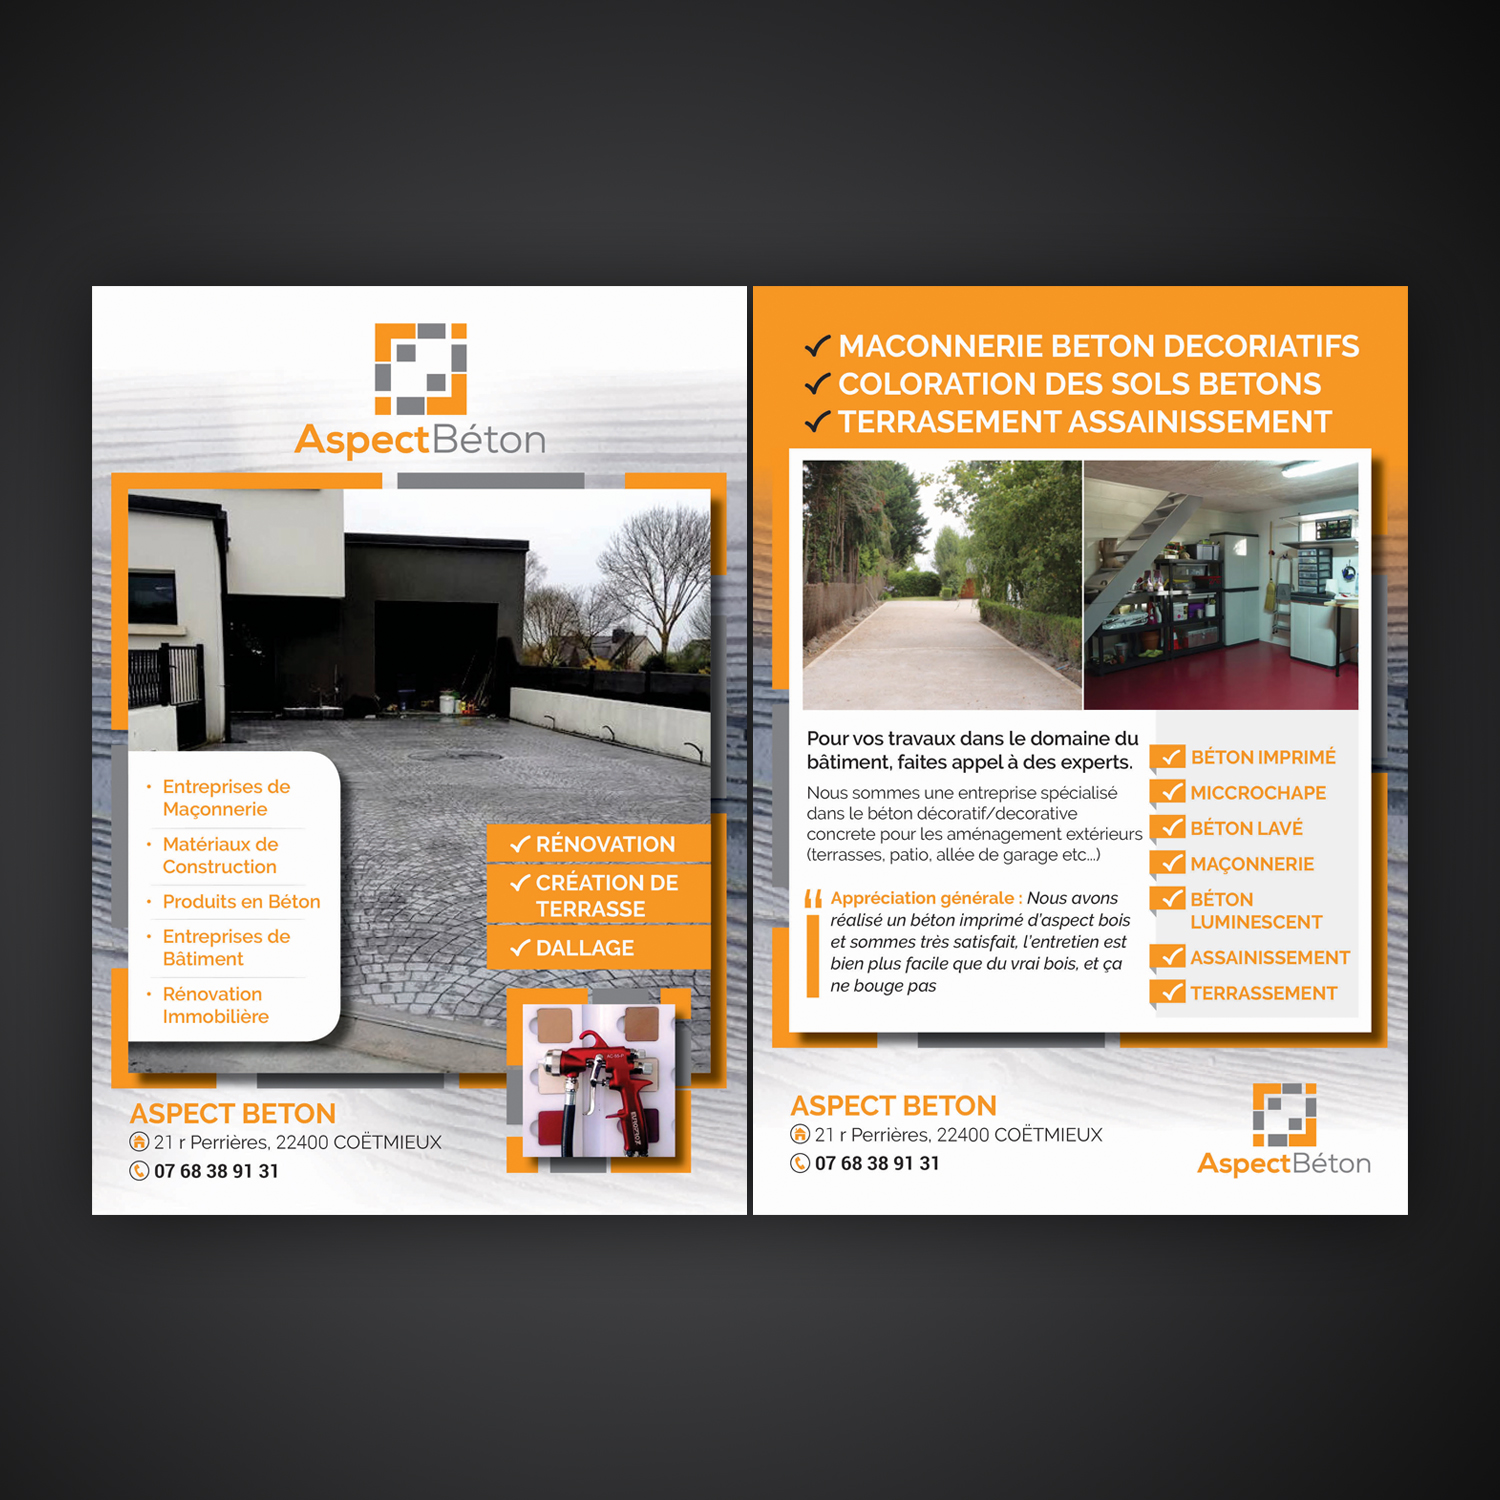 Garage Dans Le 91 Serious Modern Concrete Flyer Design For A Company By Mariyam